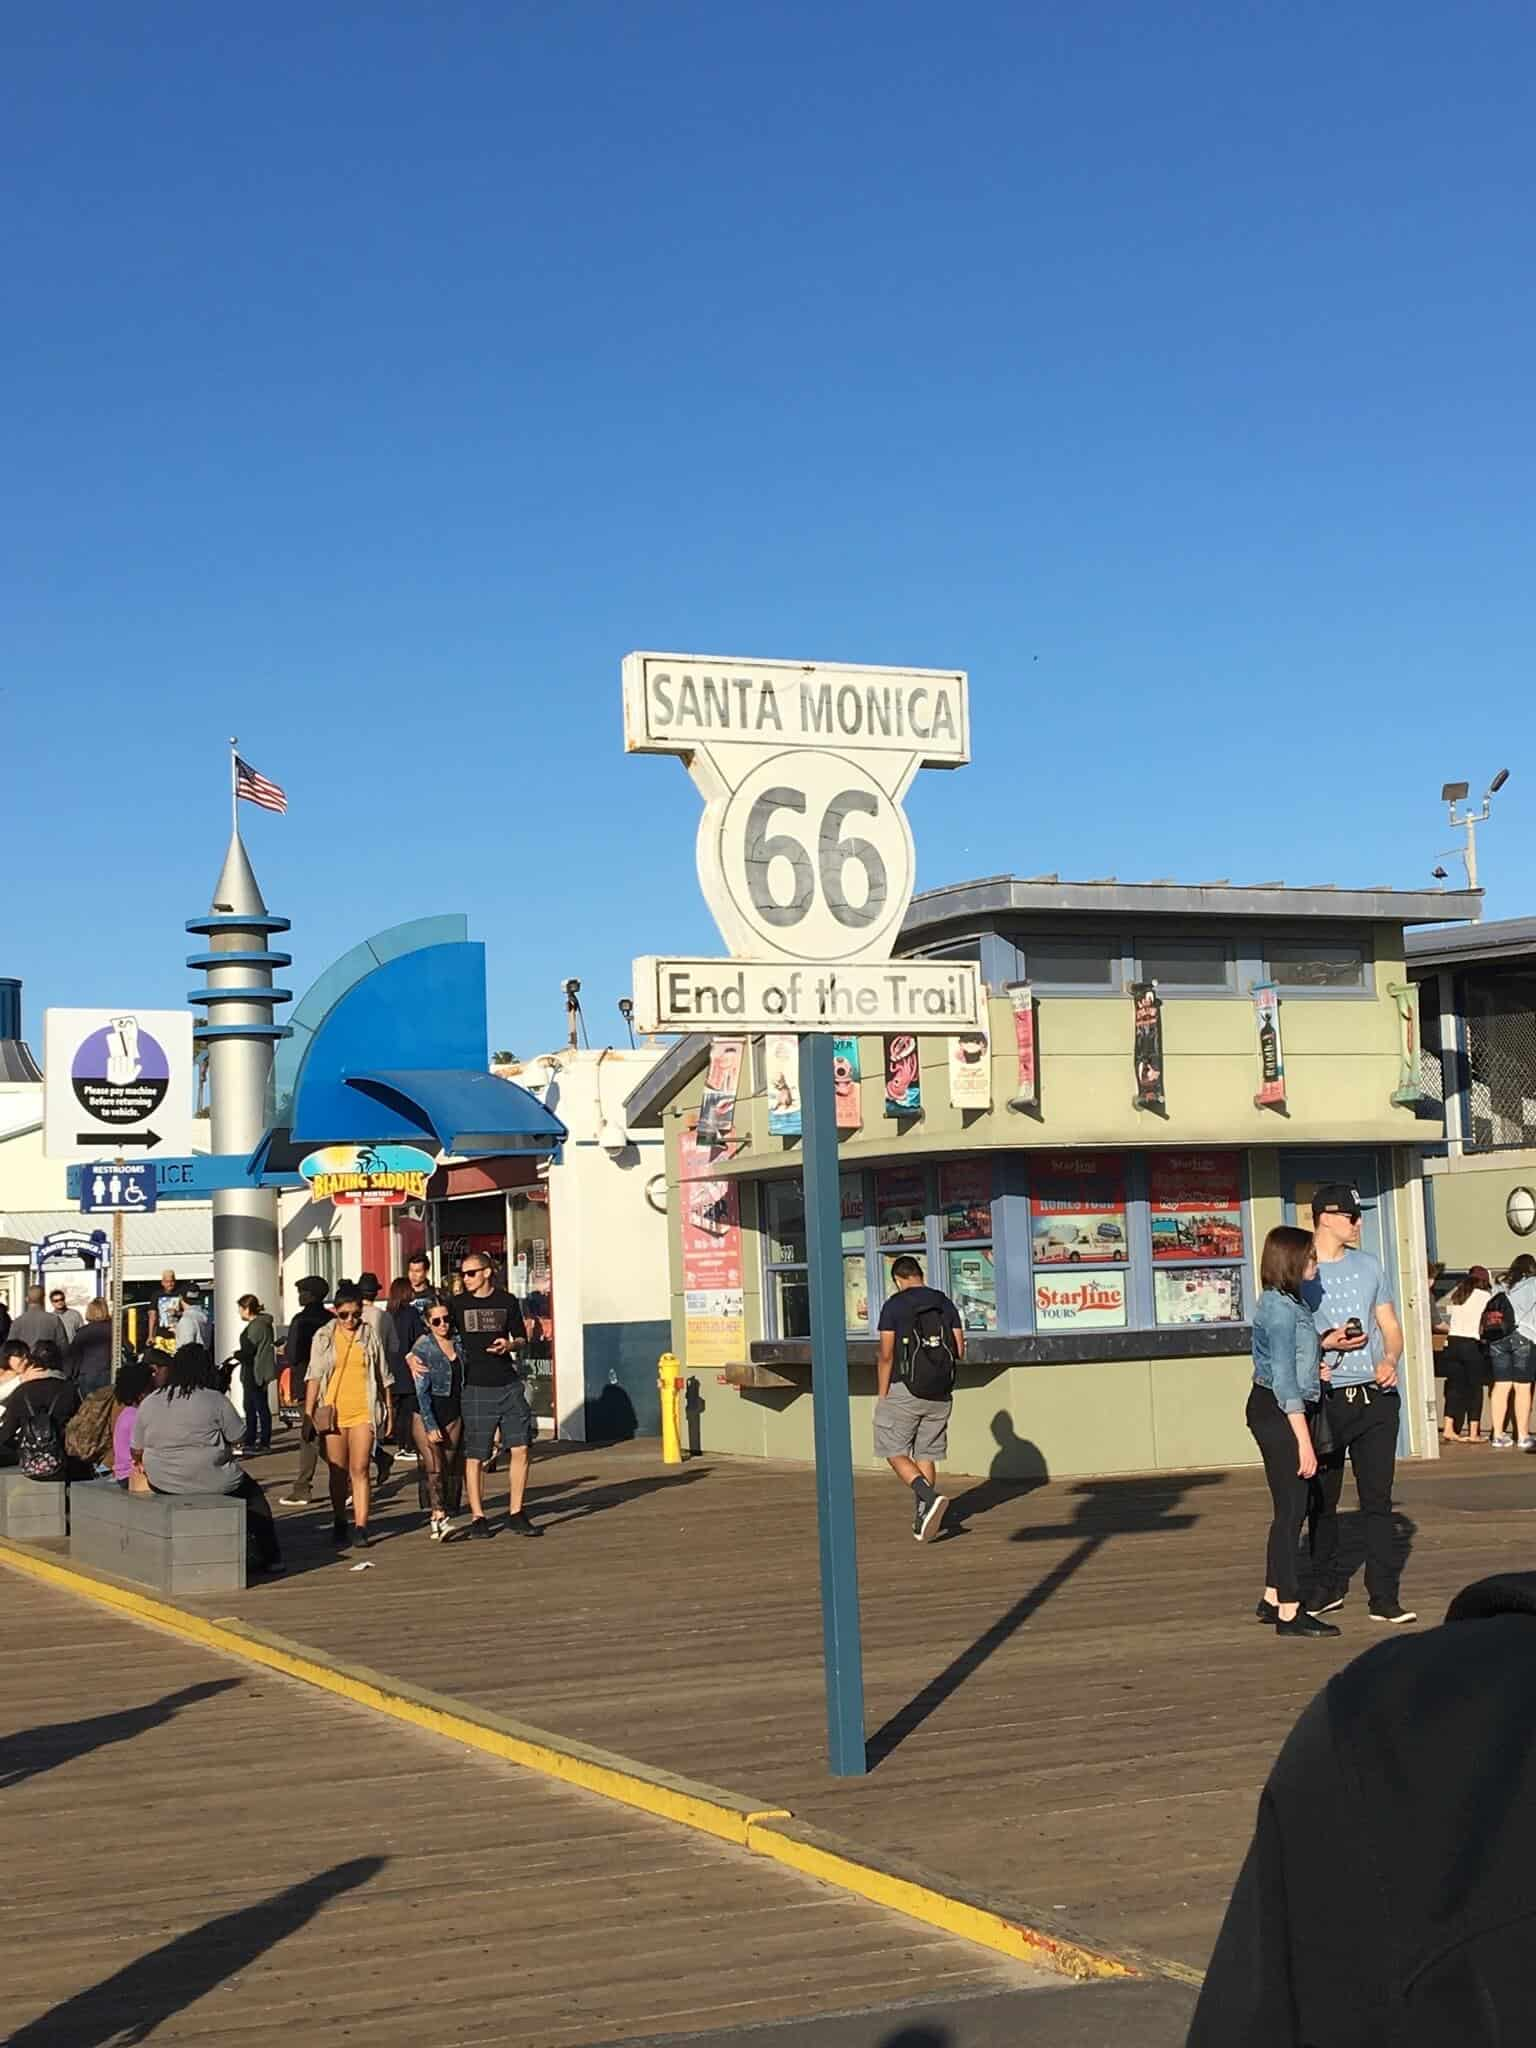 End of Route 66 trail - Santa Monica Pier